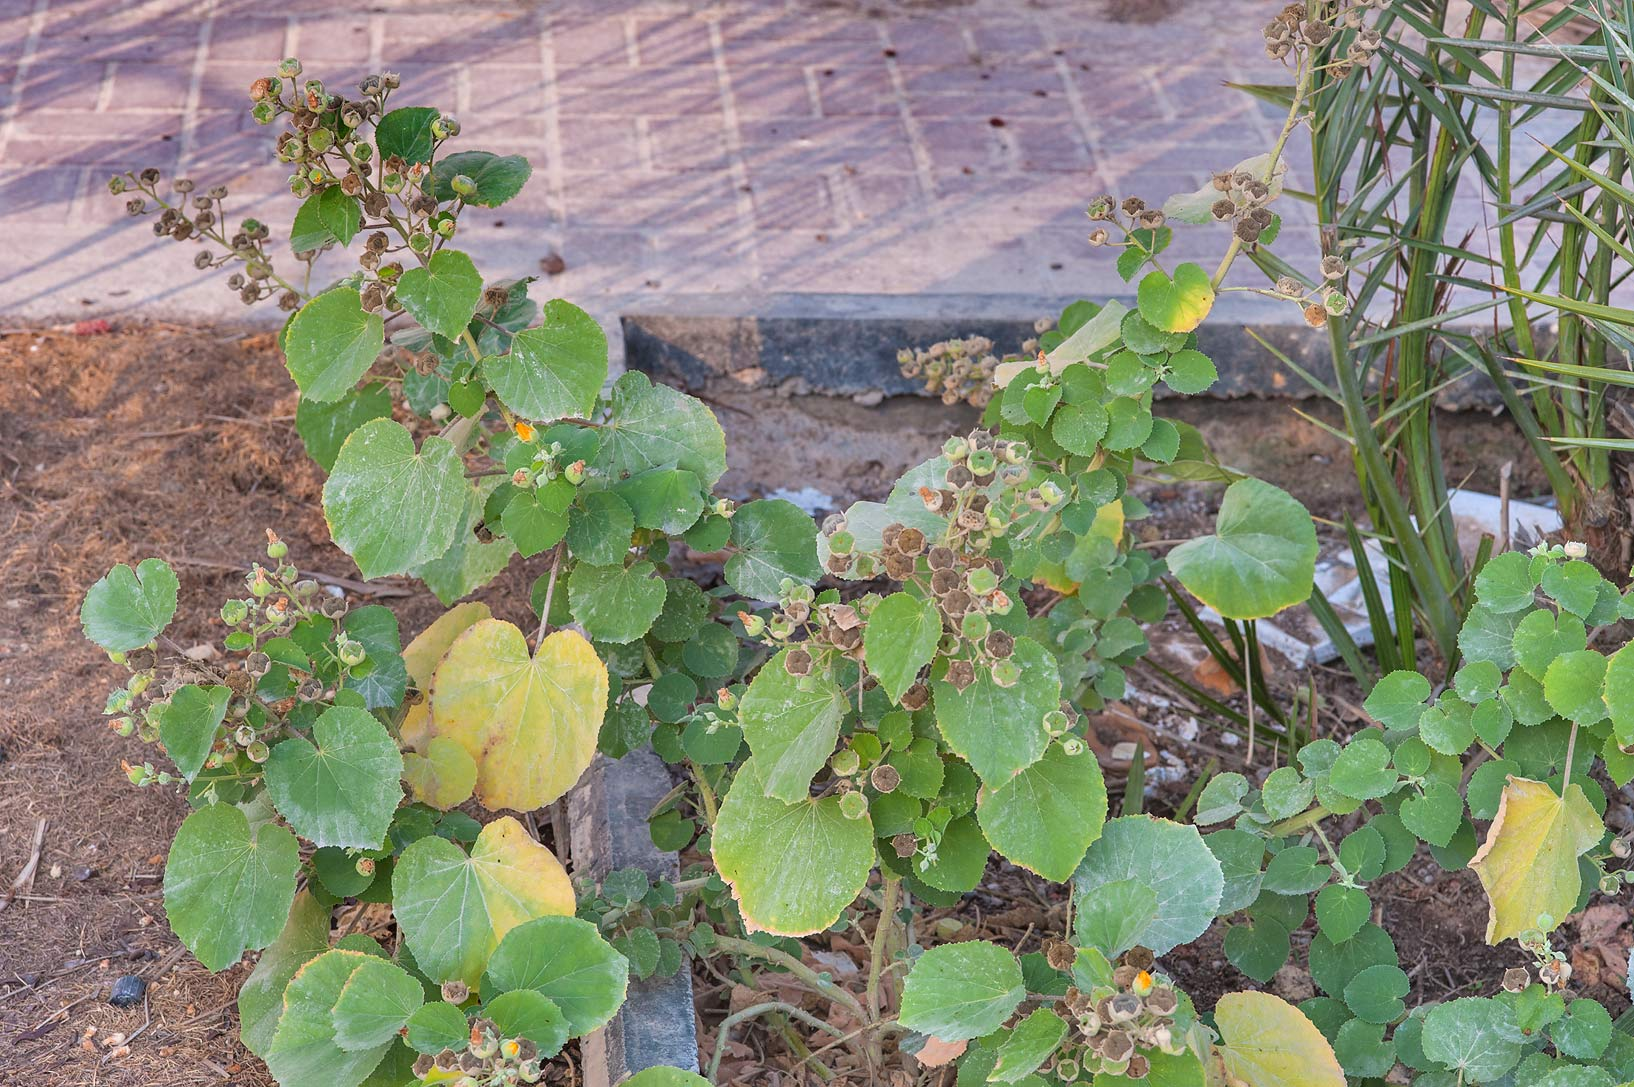 Plant of Abutilon figarianum behind gas station on Al Sham St. in West Bay. Doha, Qatar